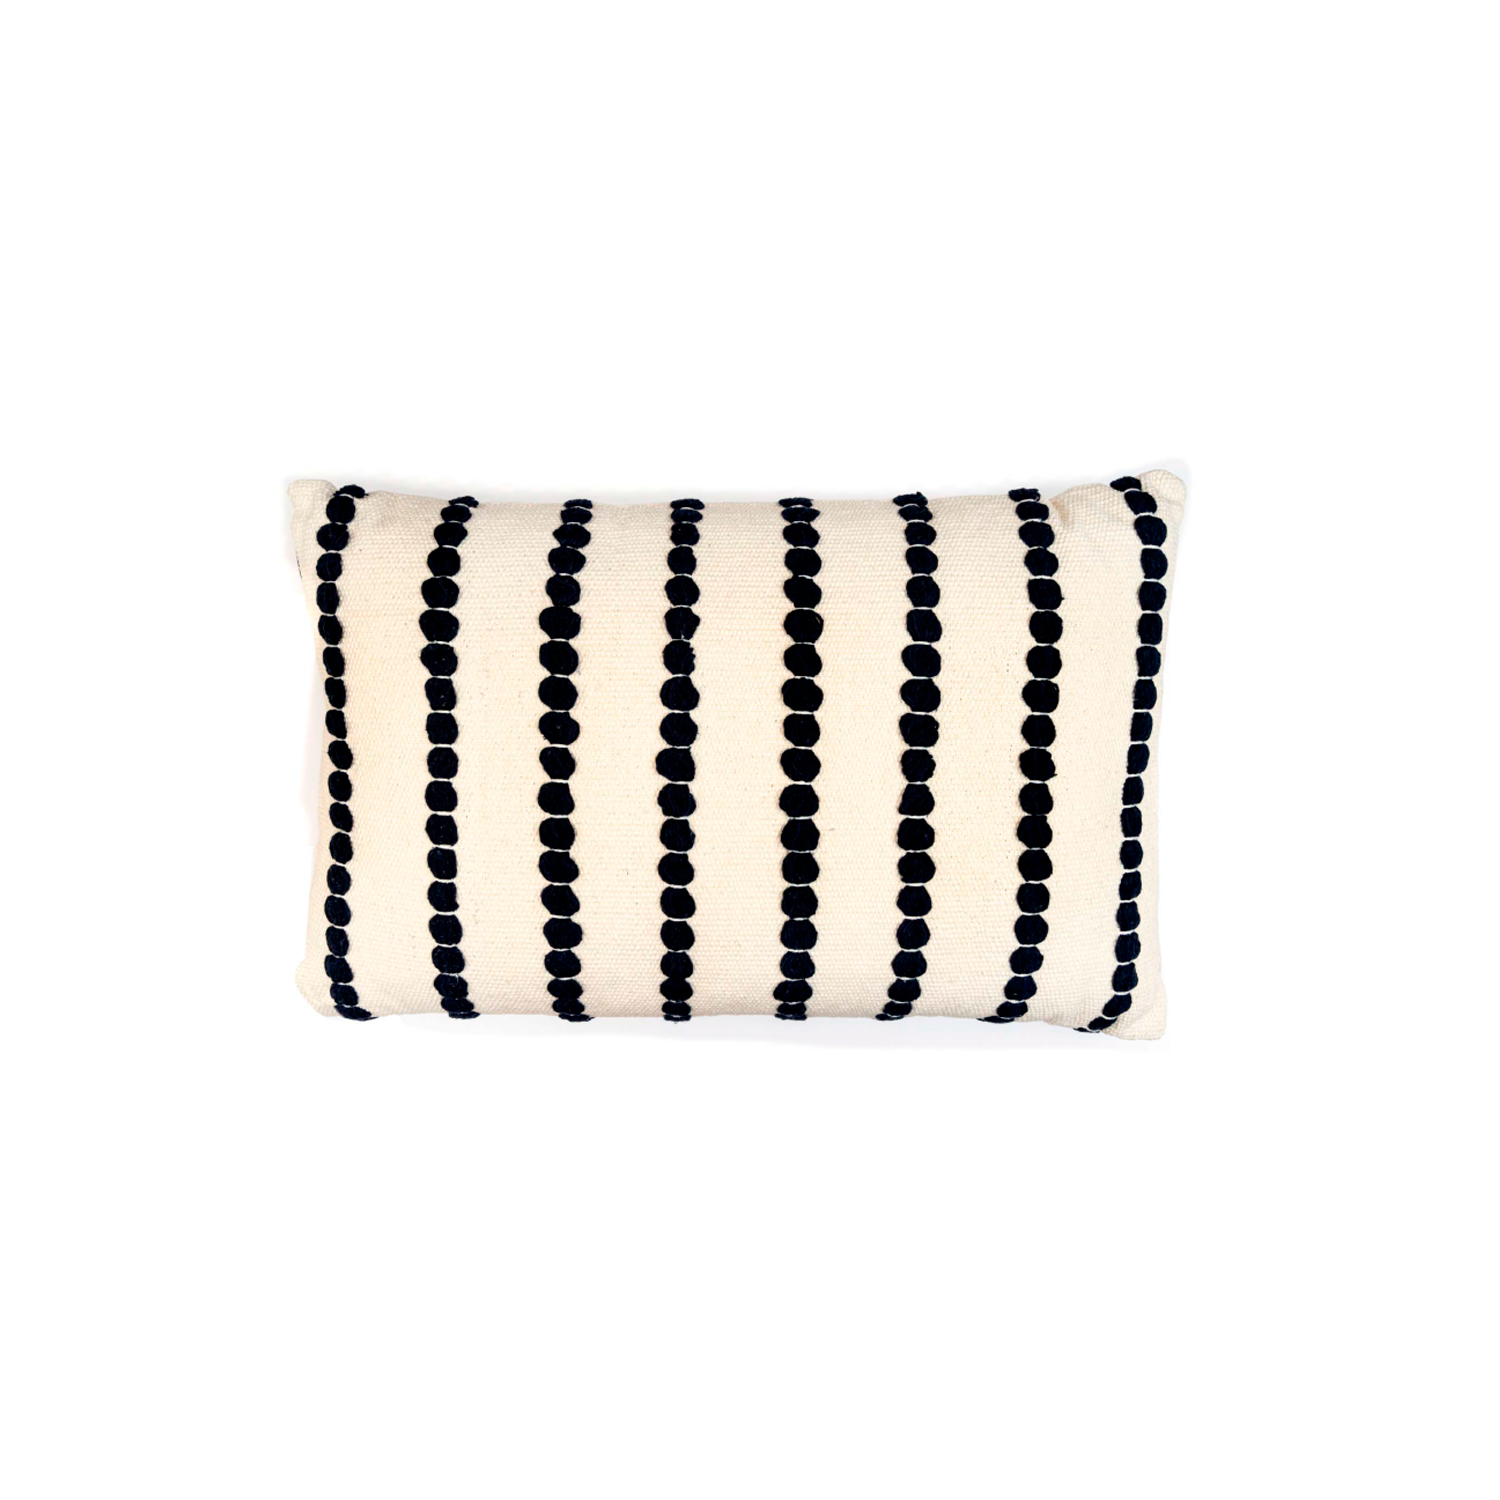 Lua Branca Cotton Cushion Large - The Flame Sustainable Collection is made from a selection of organic cotton fibres, eco-friendly, hand-woven or elaborated using traditional hand-loom techniques. Carefully knitted within a trained community of women that found in their craft a way to provide their families.  This collection combines Elisa Atheniense mission for responsible sourcing and manufacturing. Each piece is meticulously hand-loom by artisans who practised methods with age-old techniques. With a minimal electricity impact, each item crafted is therefore unique and exclusive. Weavers and artisans are the ultimate lifelines of Elisa Atheniense Home Products.  The hand woven cotton, washable cushion cover is made in Brazil and the inner cushion is made in the UK.   | Matter of Stuff